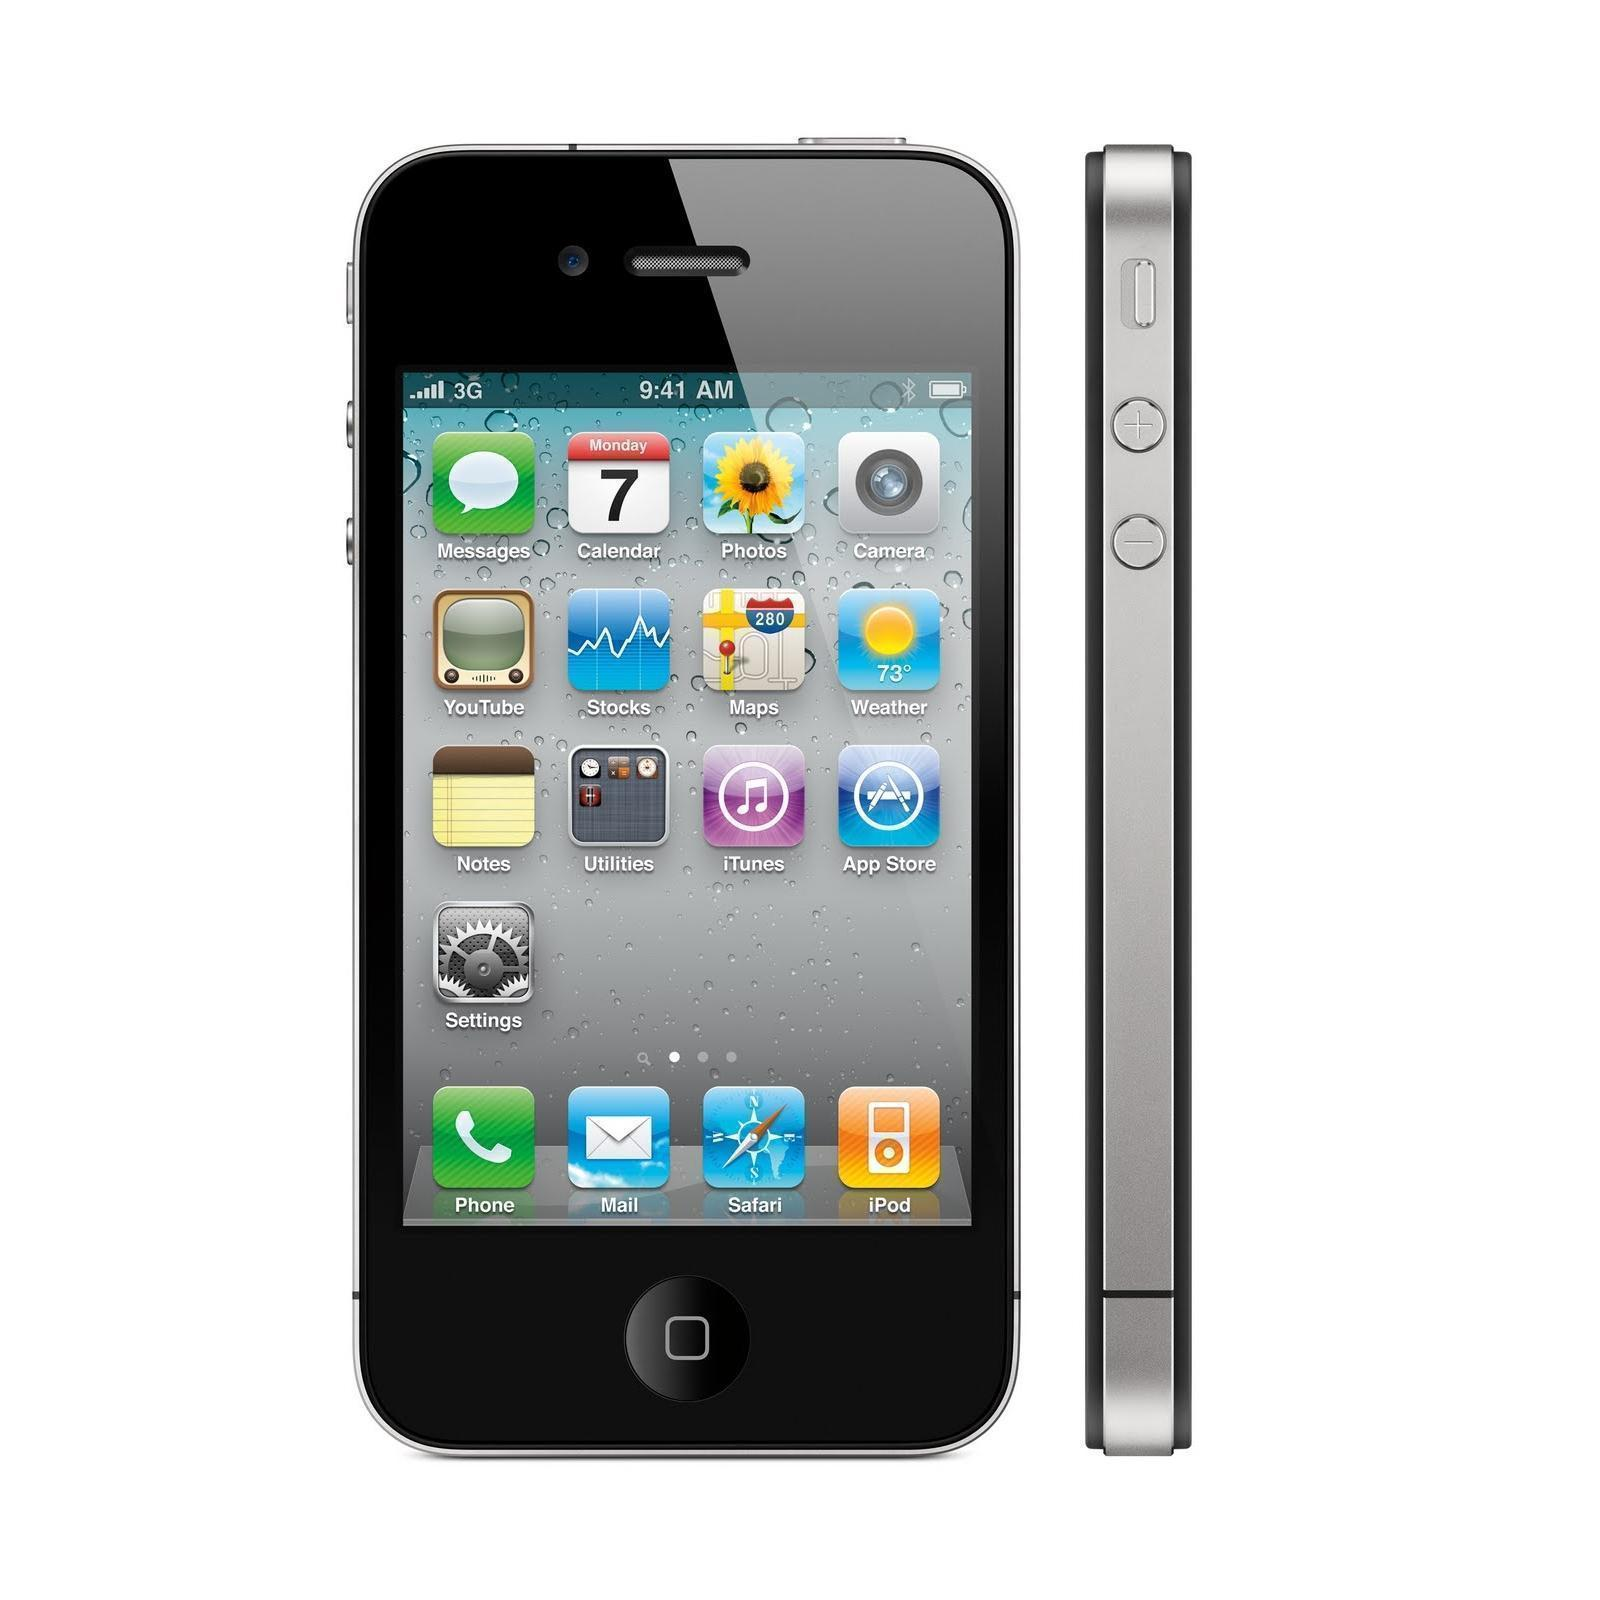 iPhone 4S 8 Gb - Negro - Libre